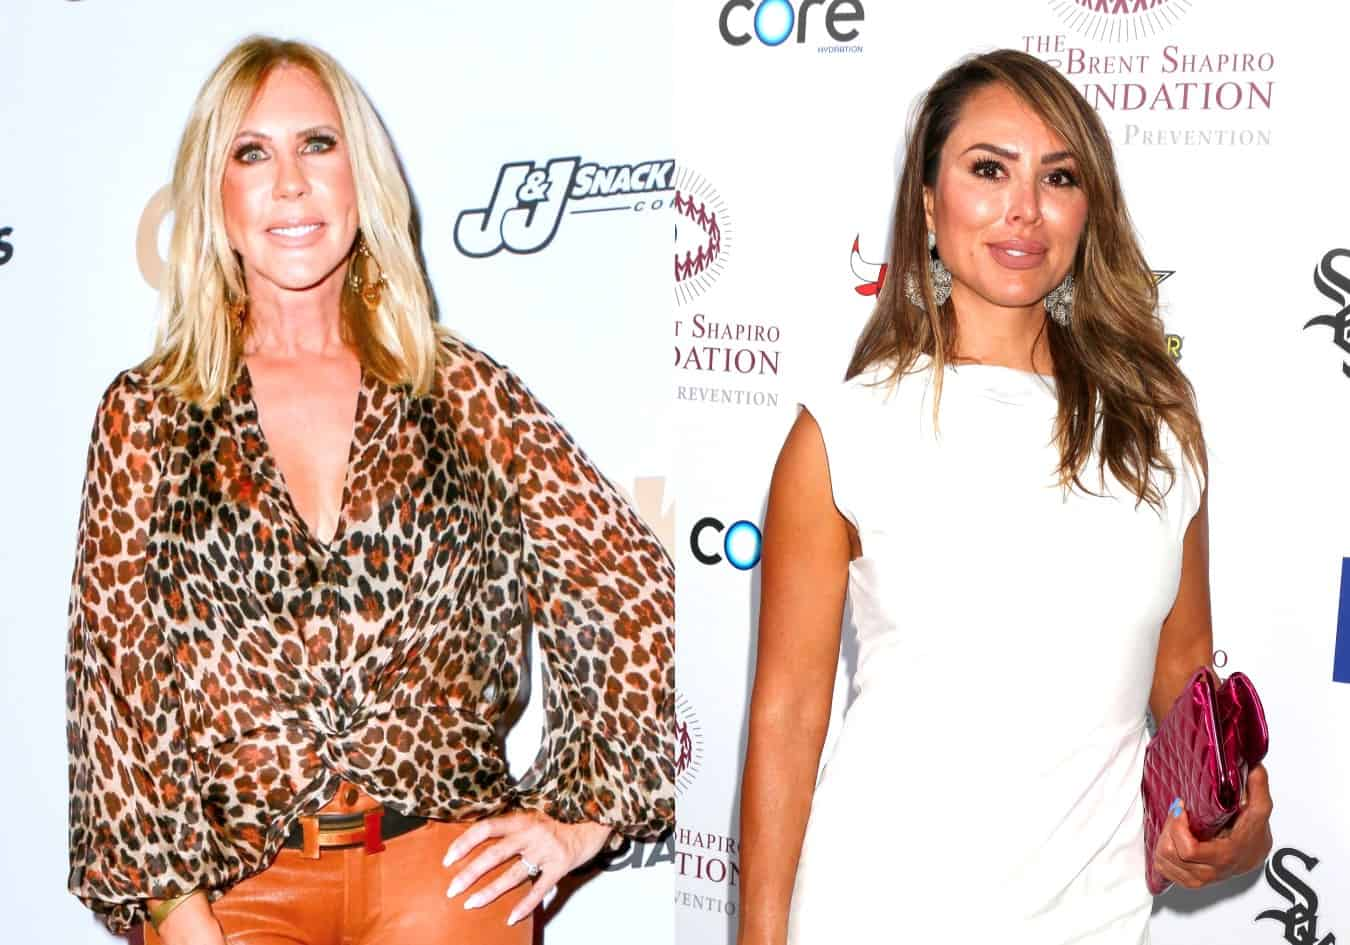 REPORT: Vicki Gunvalson and Kelly Dodd Made up at RHOC Season 14 Reunion, Find Out Where They Stand With One Another Today